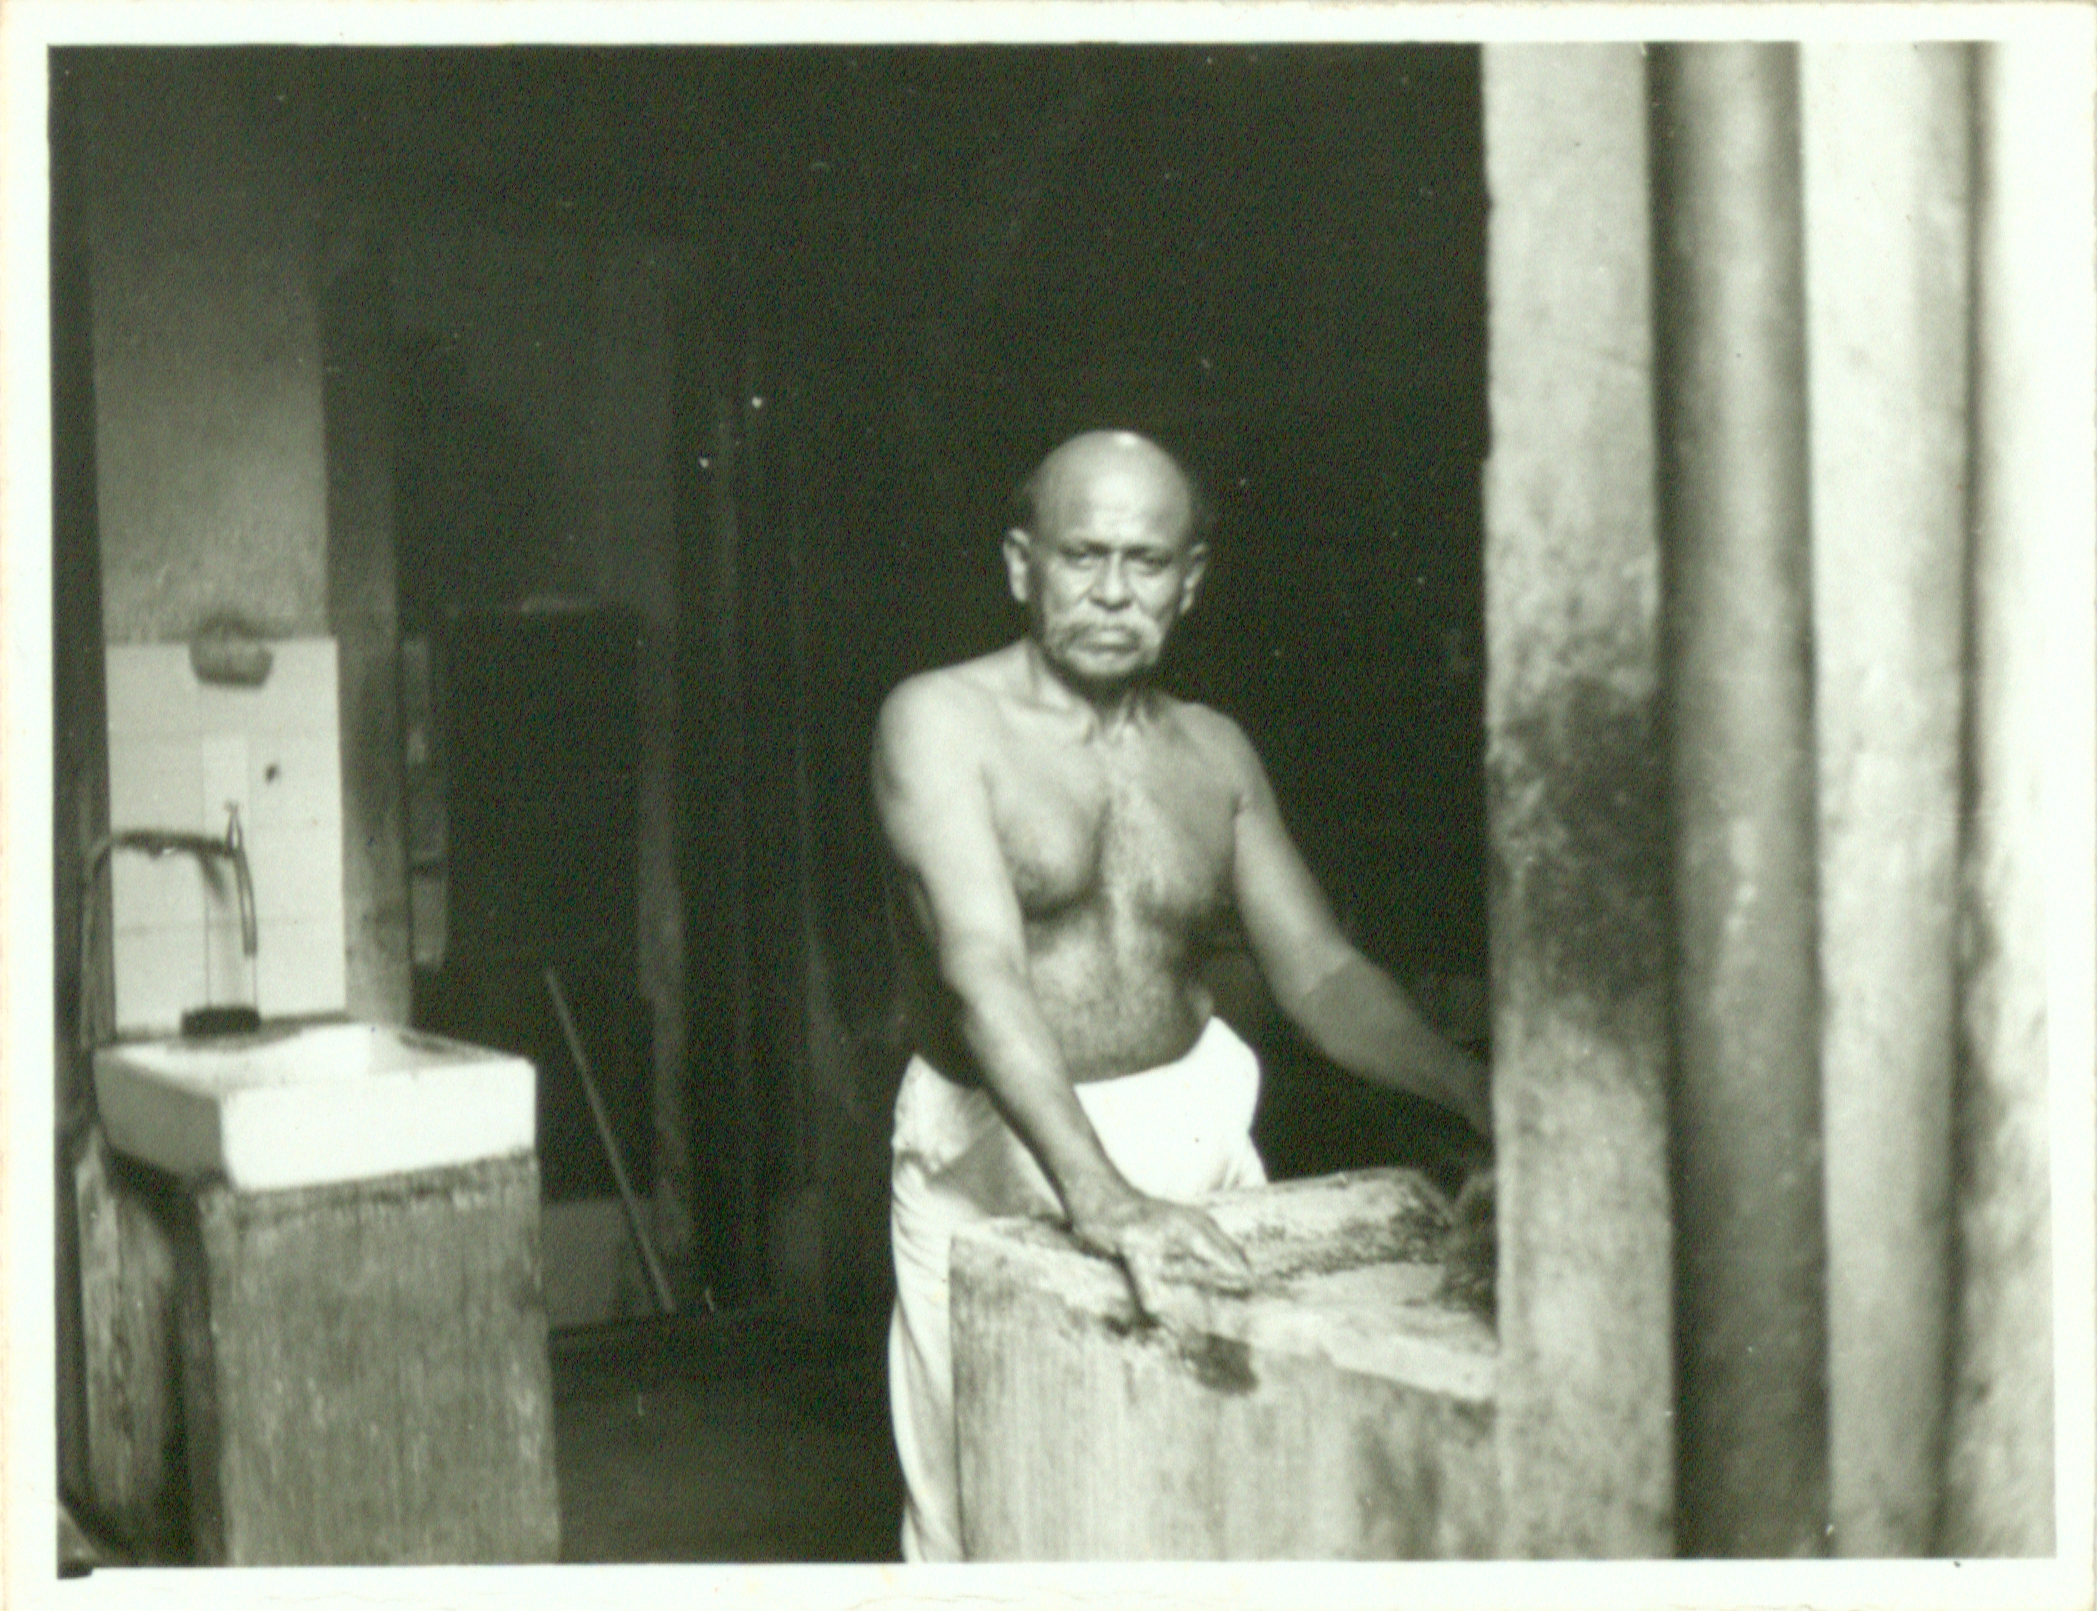 A cook grinding some spices at the cooking area inside the 49 Market Street Kittengi, 1970. Nachiappa Chettiar Collection, courtesy of National Archives of Singapore